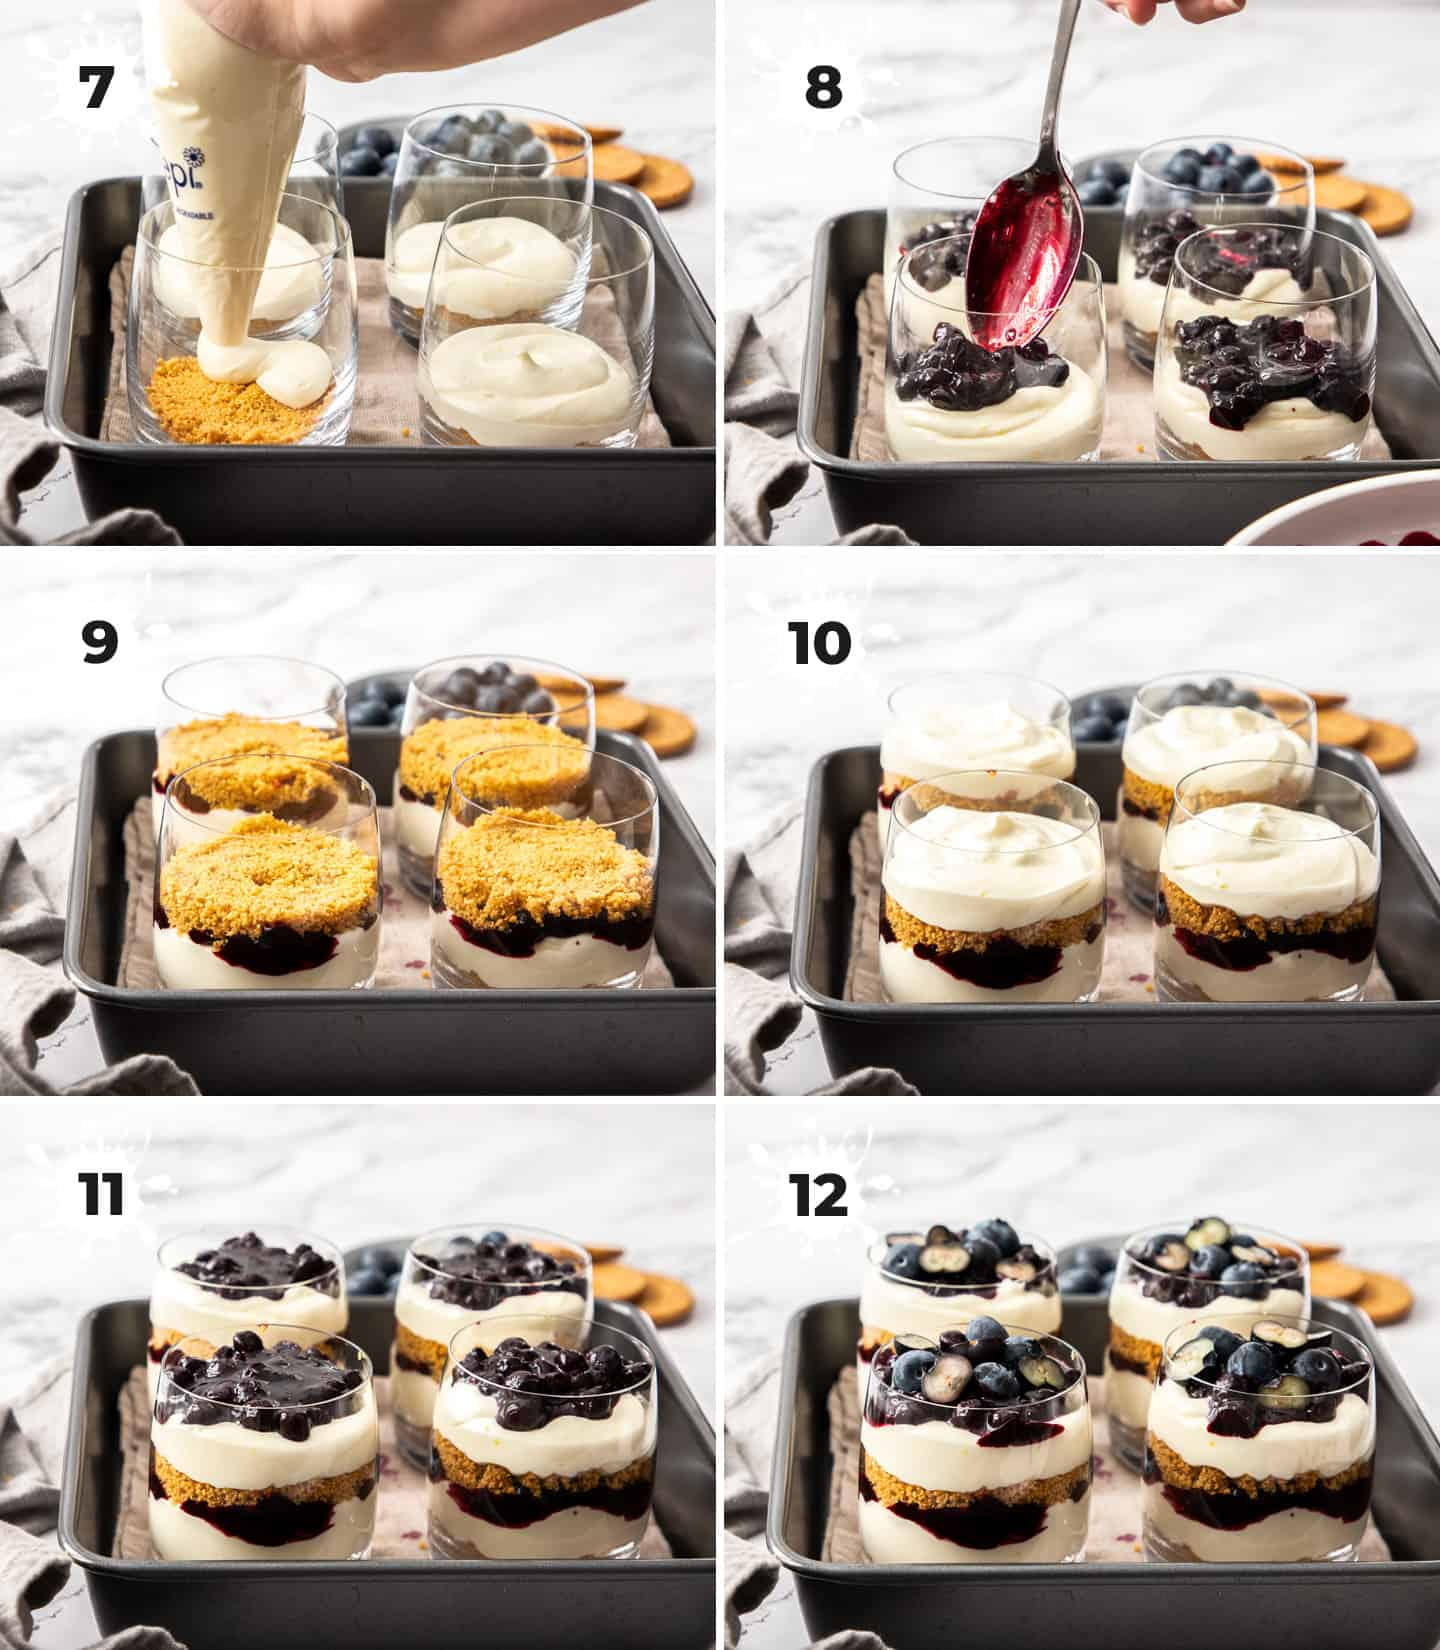 6 images showing layers of cheesecake parfait being added to glasses.